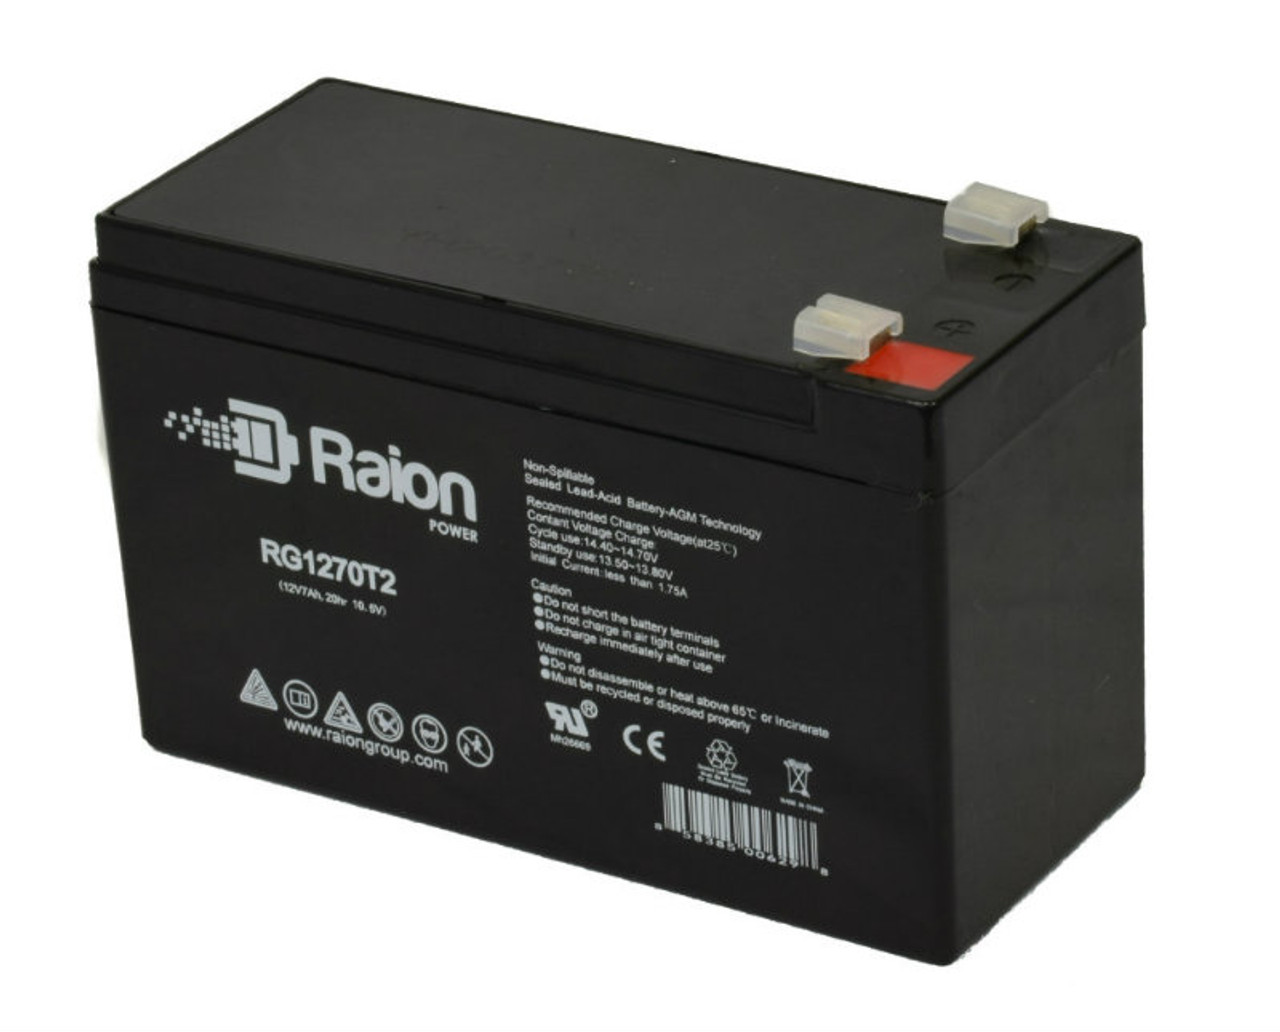 Raion Power RG1270T1 Replacement Battery for National Battery C06A